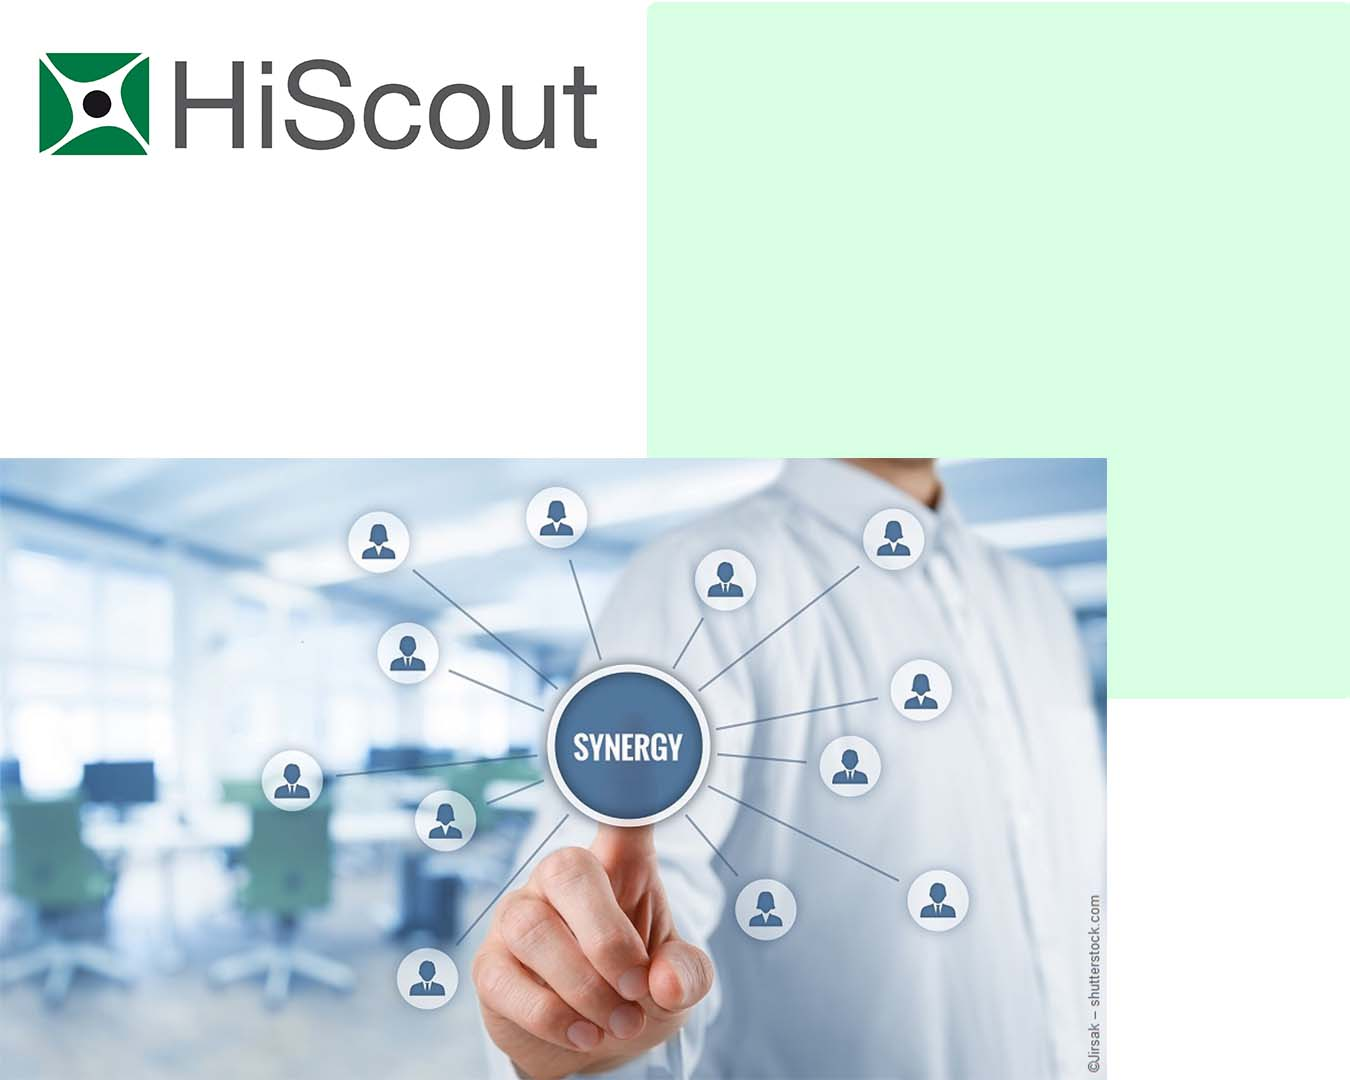 hiscout - teaser